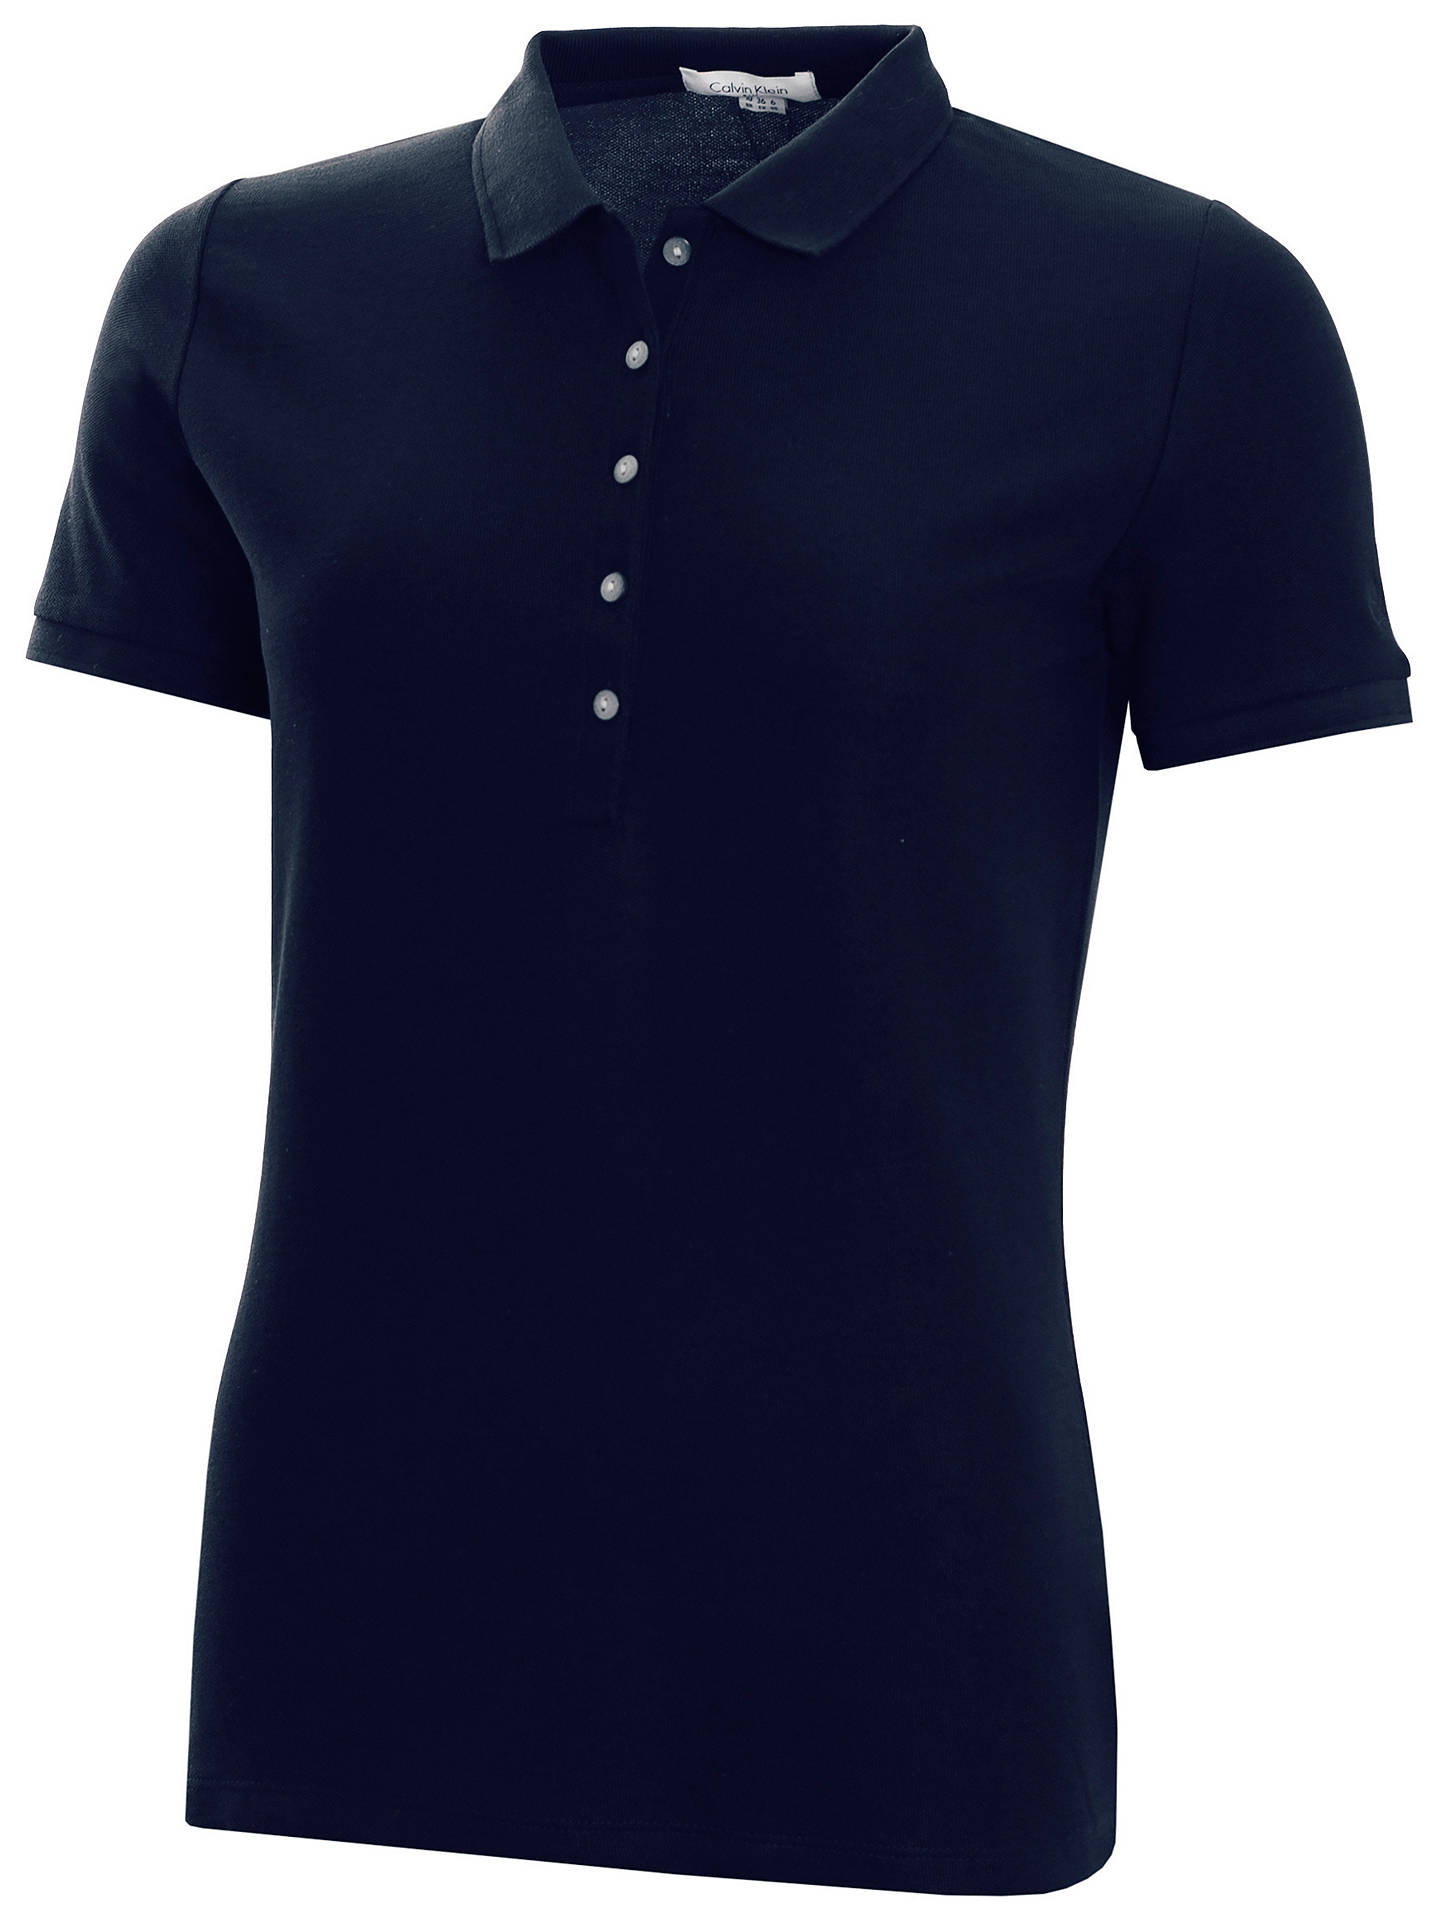 Buy Calvin Klein Performance Pique Women's Polo Top, Navy, M Online at johnlewis.com